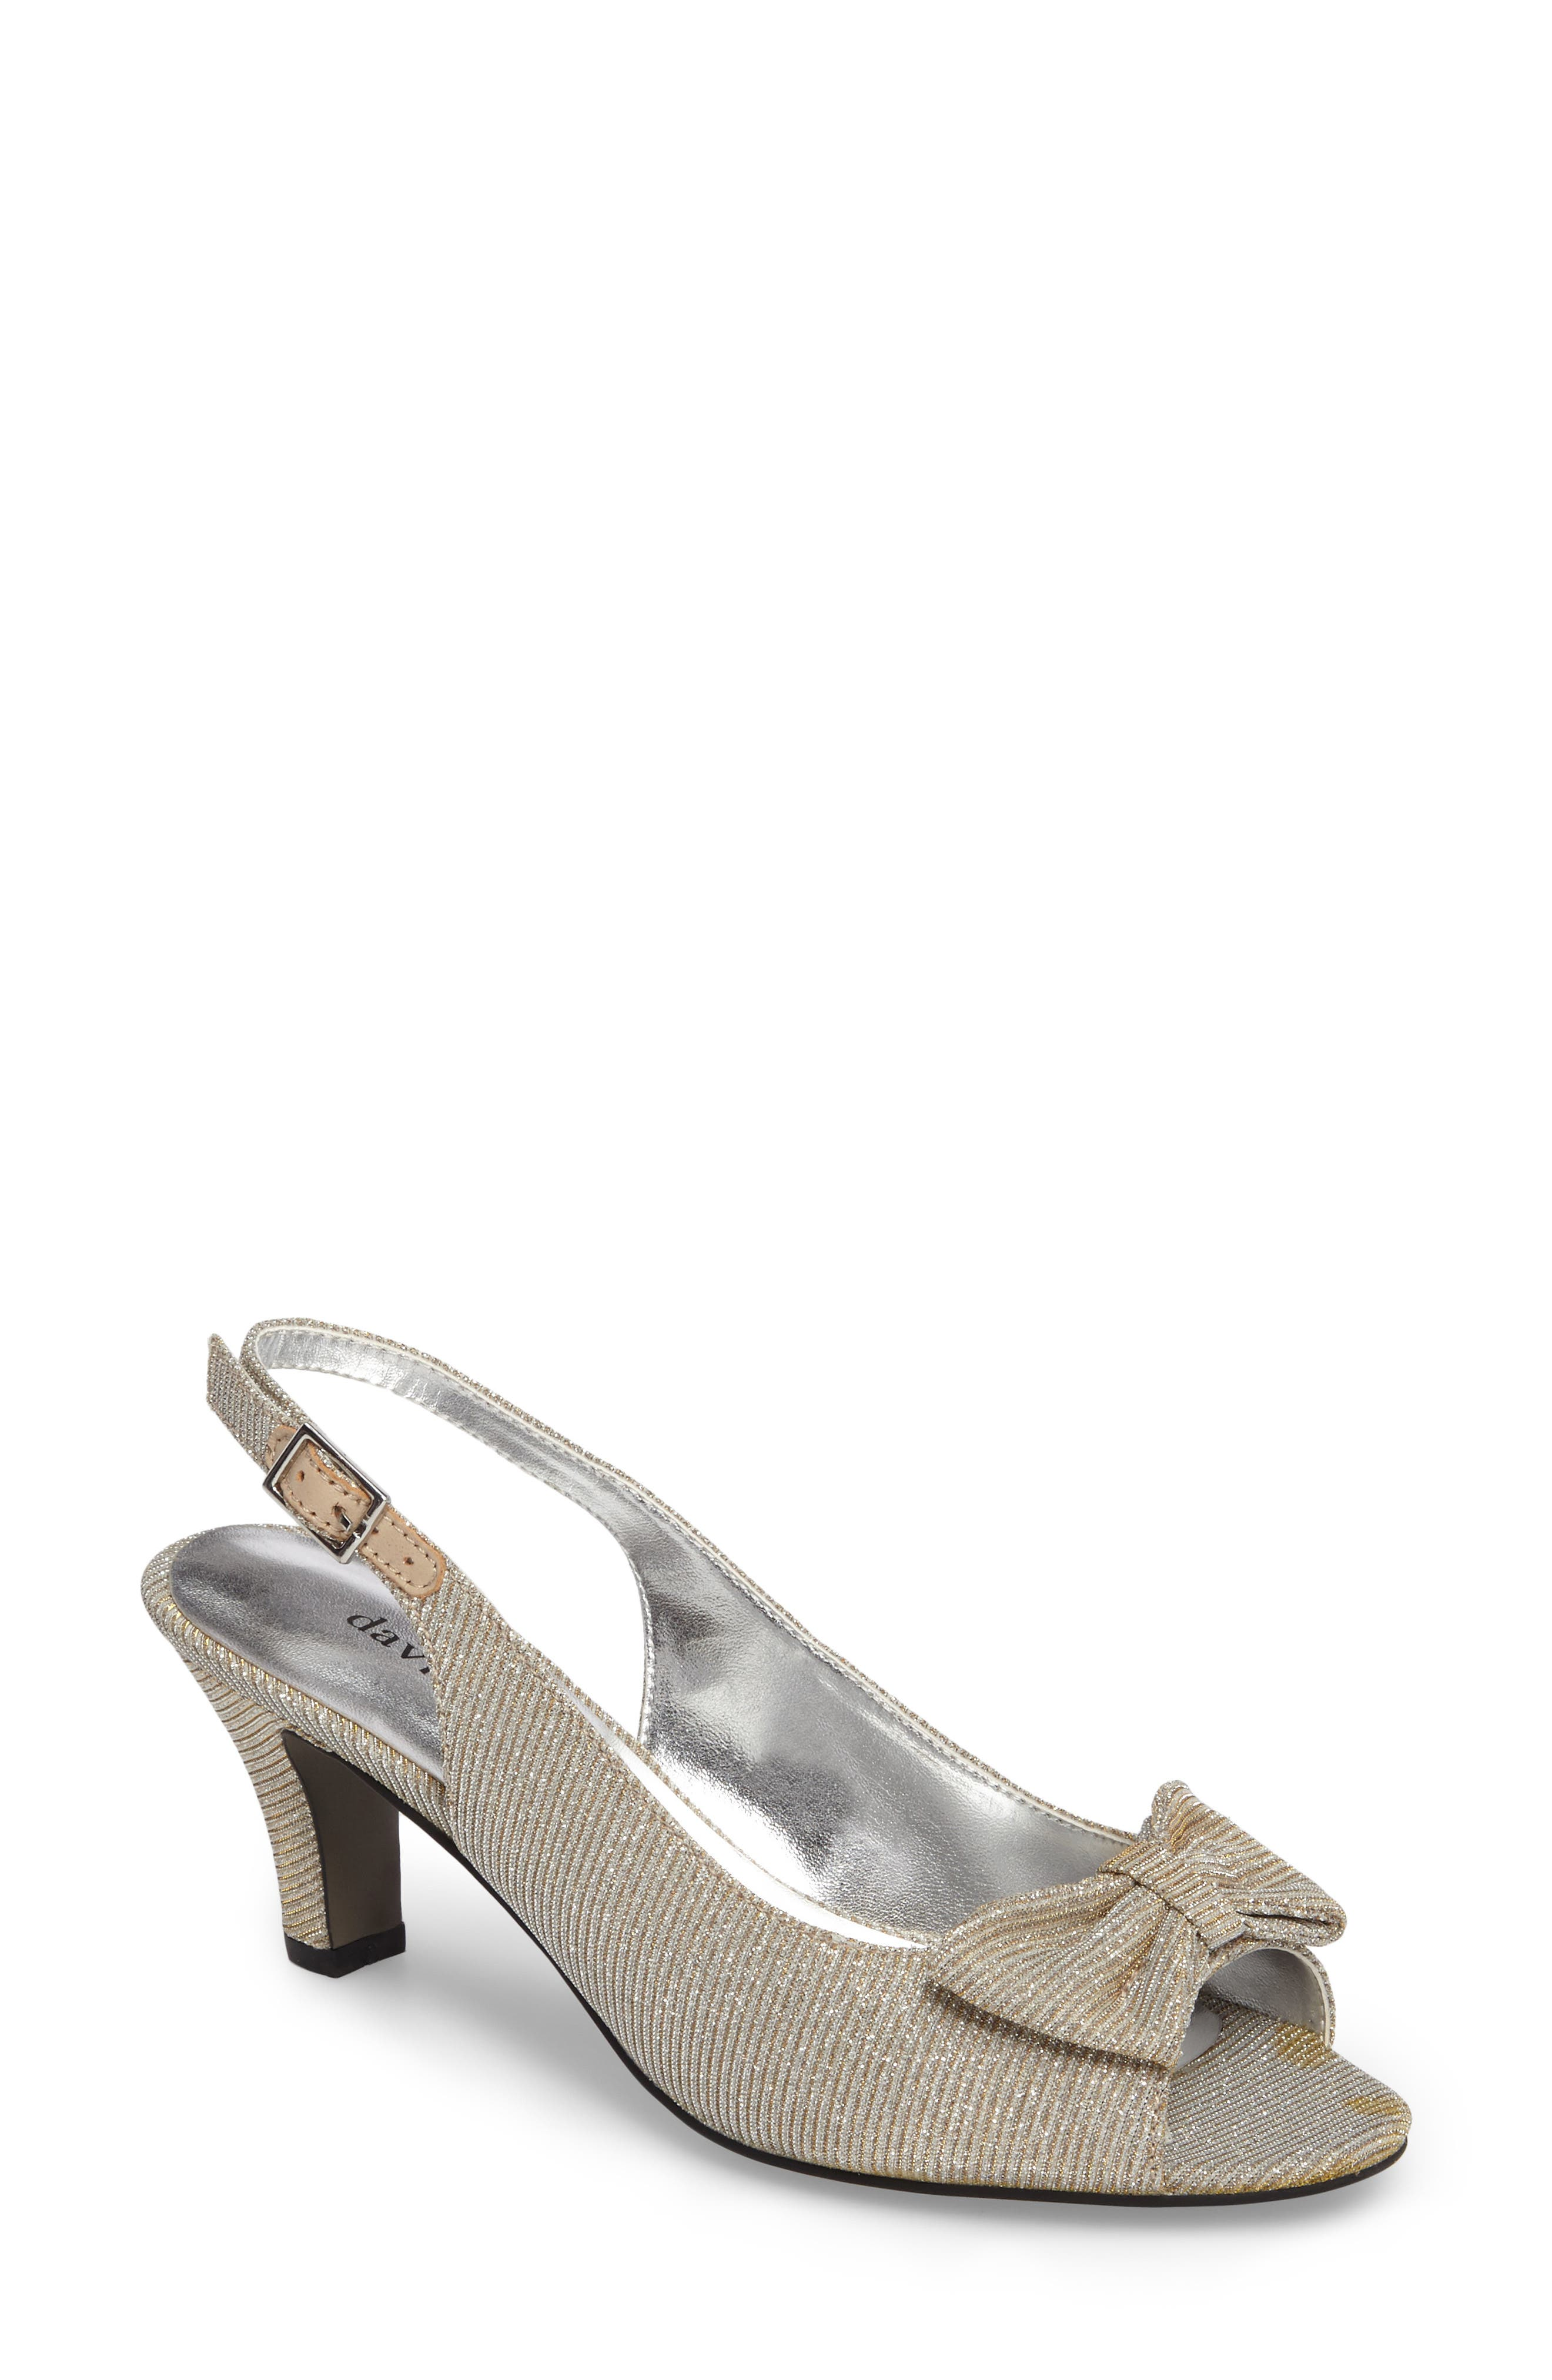 Main Image - David Tate Spirit Slingback Sandal (Women)